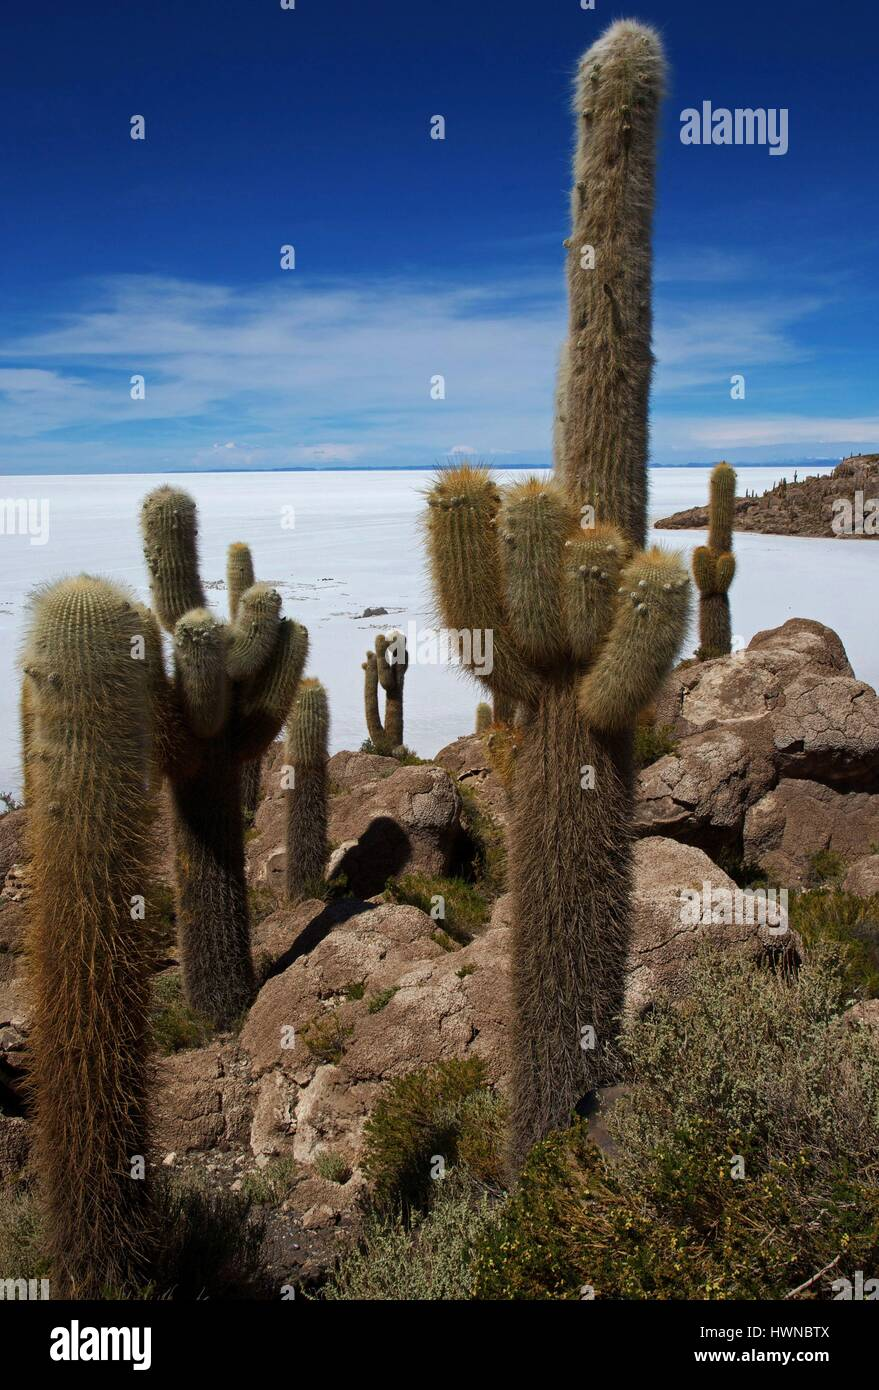 Bolivia, department of Potosi, salar de Uyuni, hill of Incahuasi bristling with giant cactus, in front of the salar - Stock Image